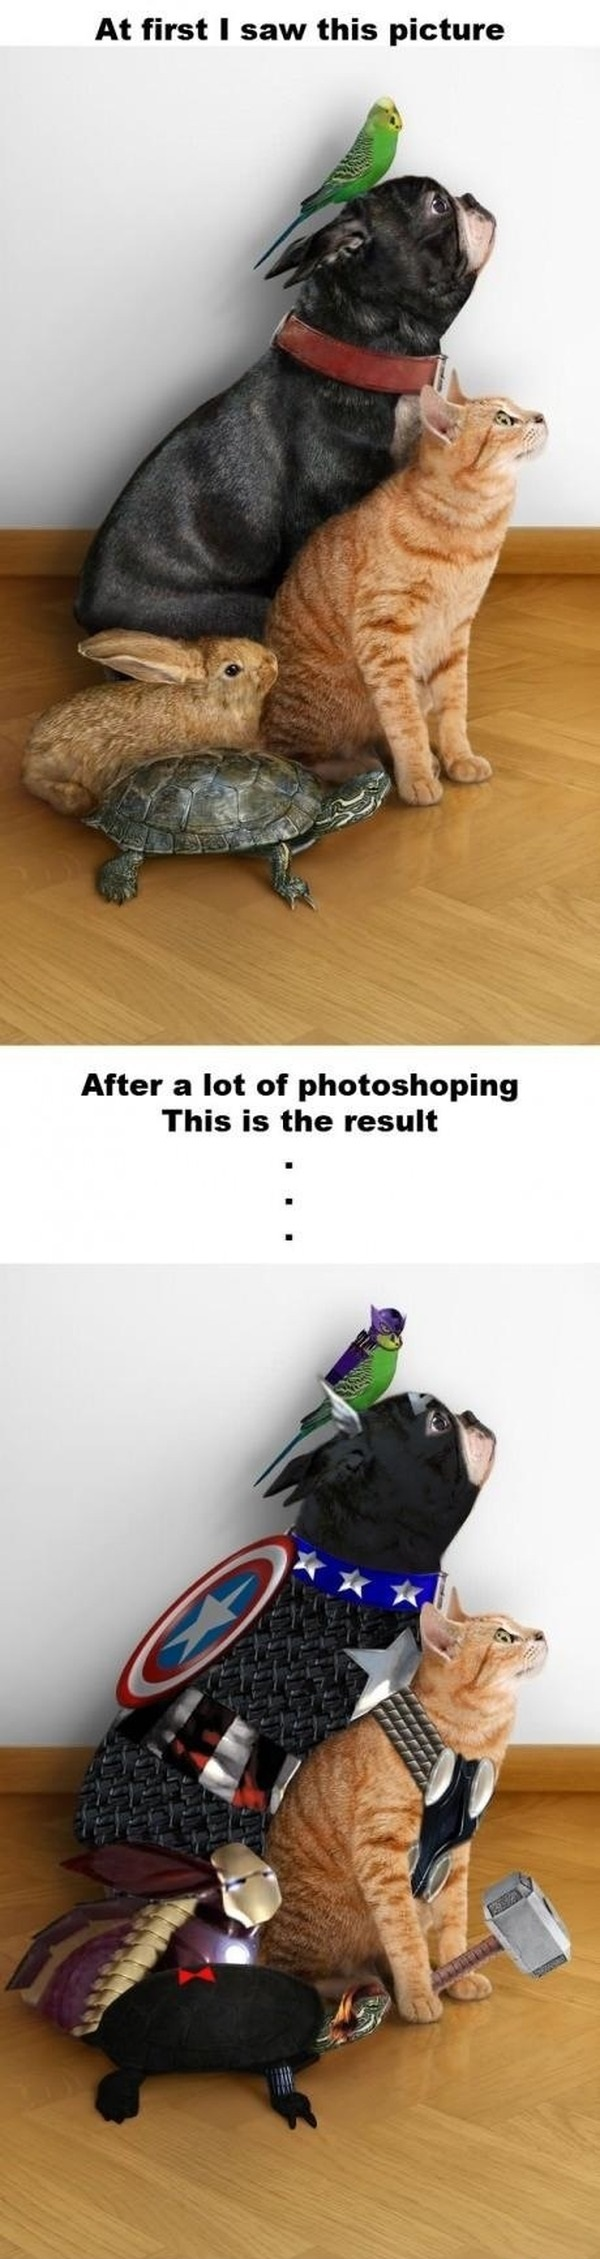 funny-picture-avengers-animals